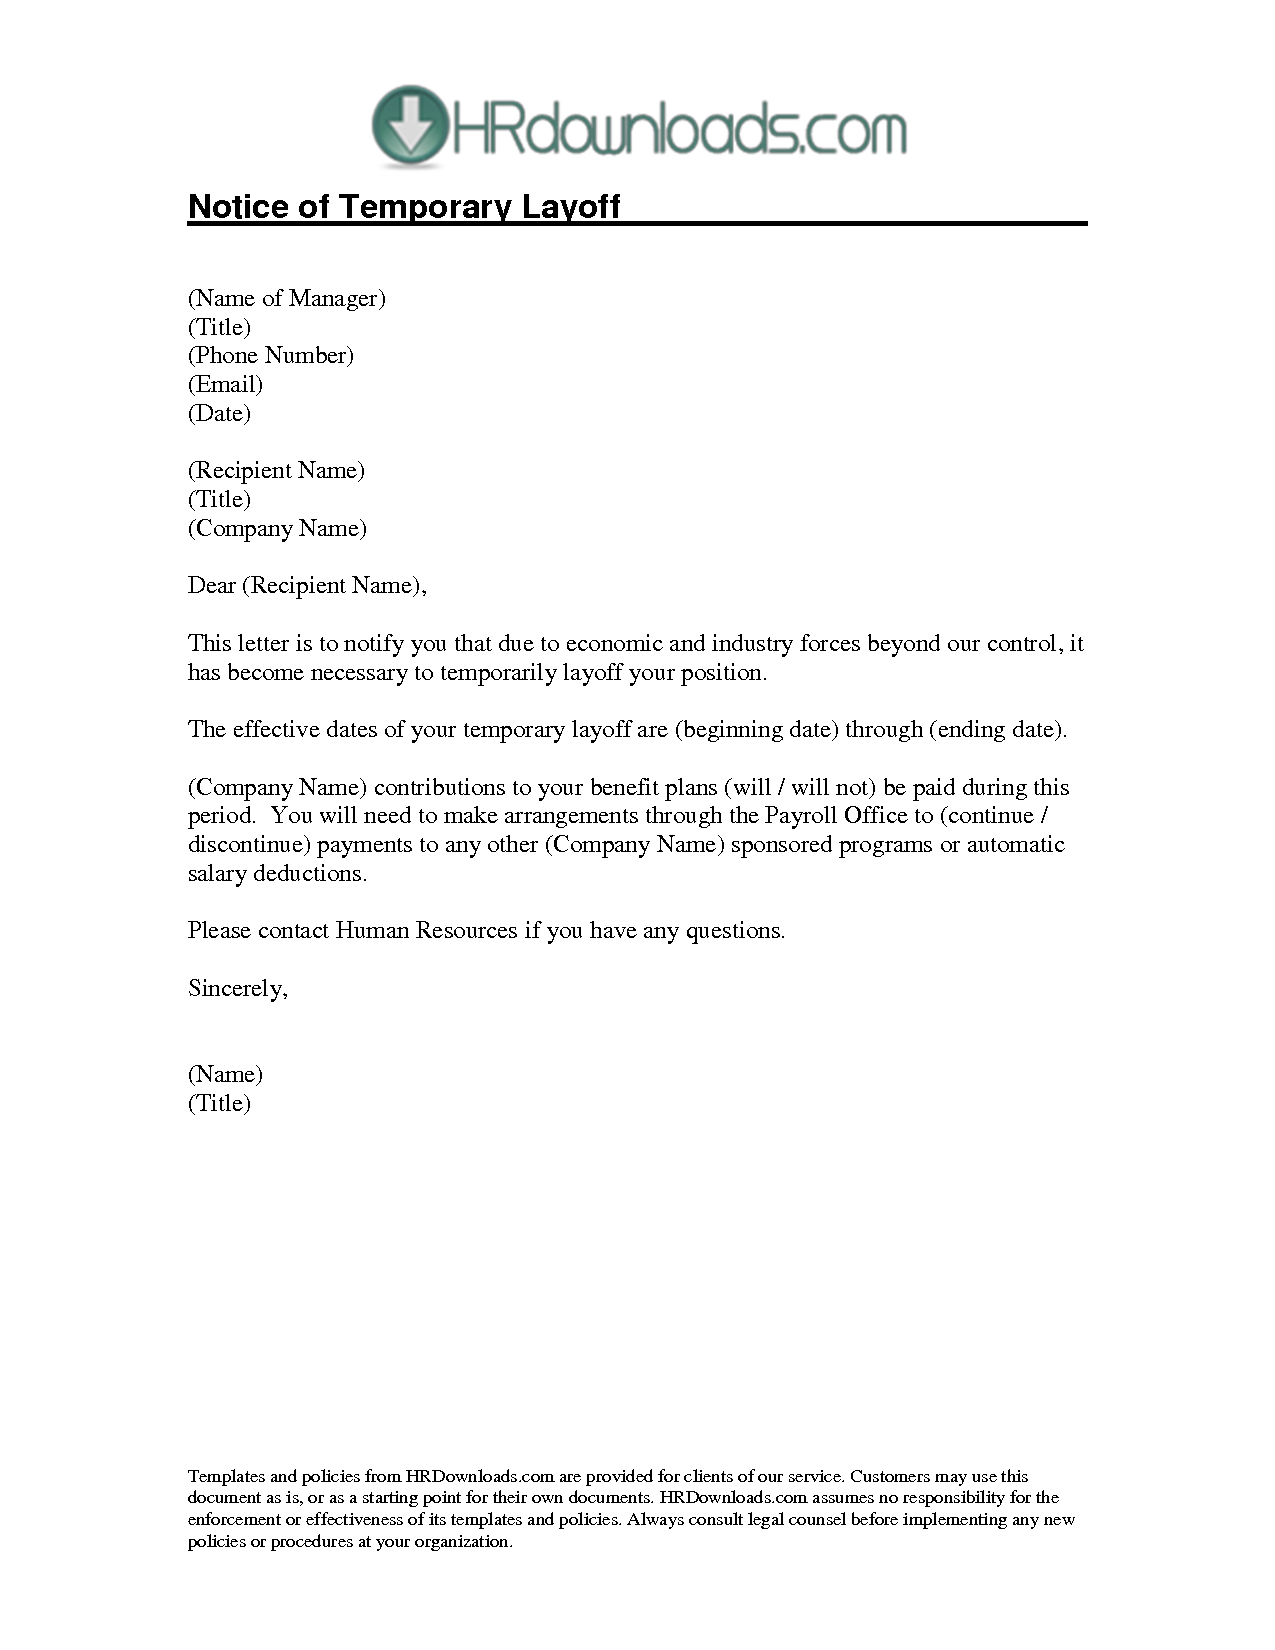 Layoff Letter Template - How to Write A Layoff Letter Image Collections Letter format